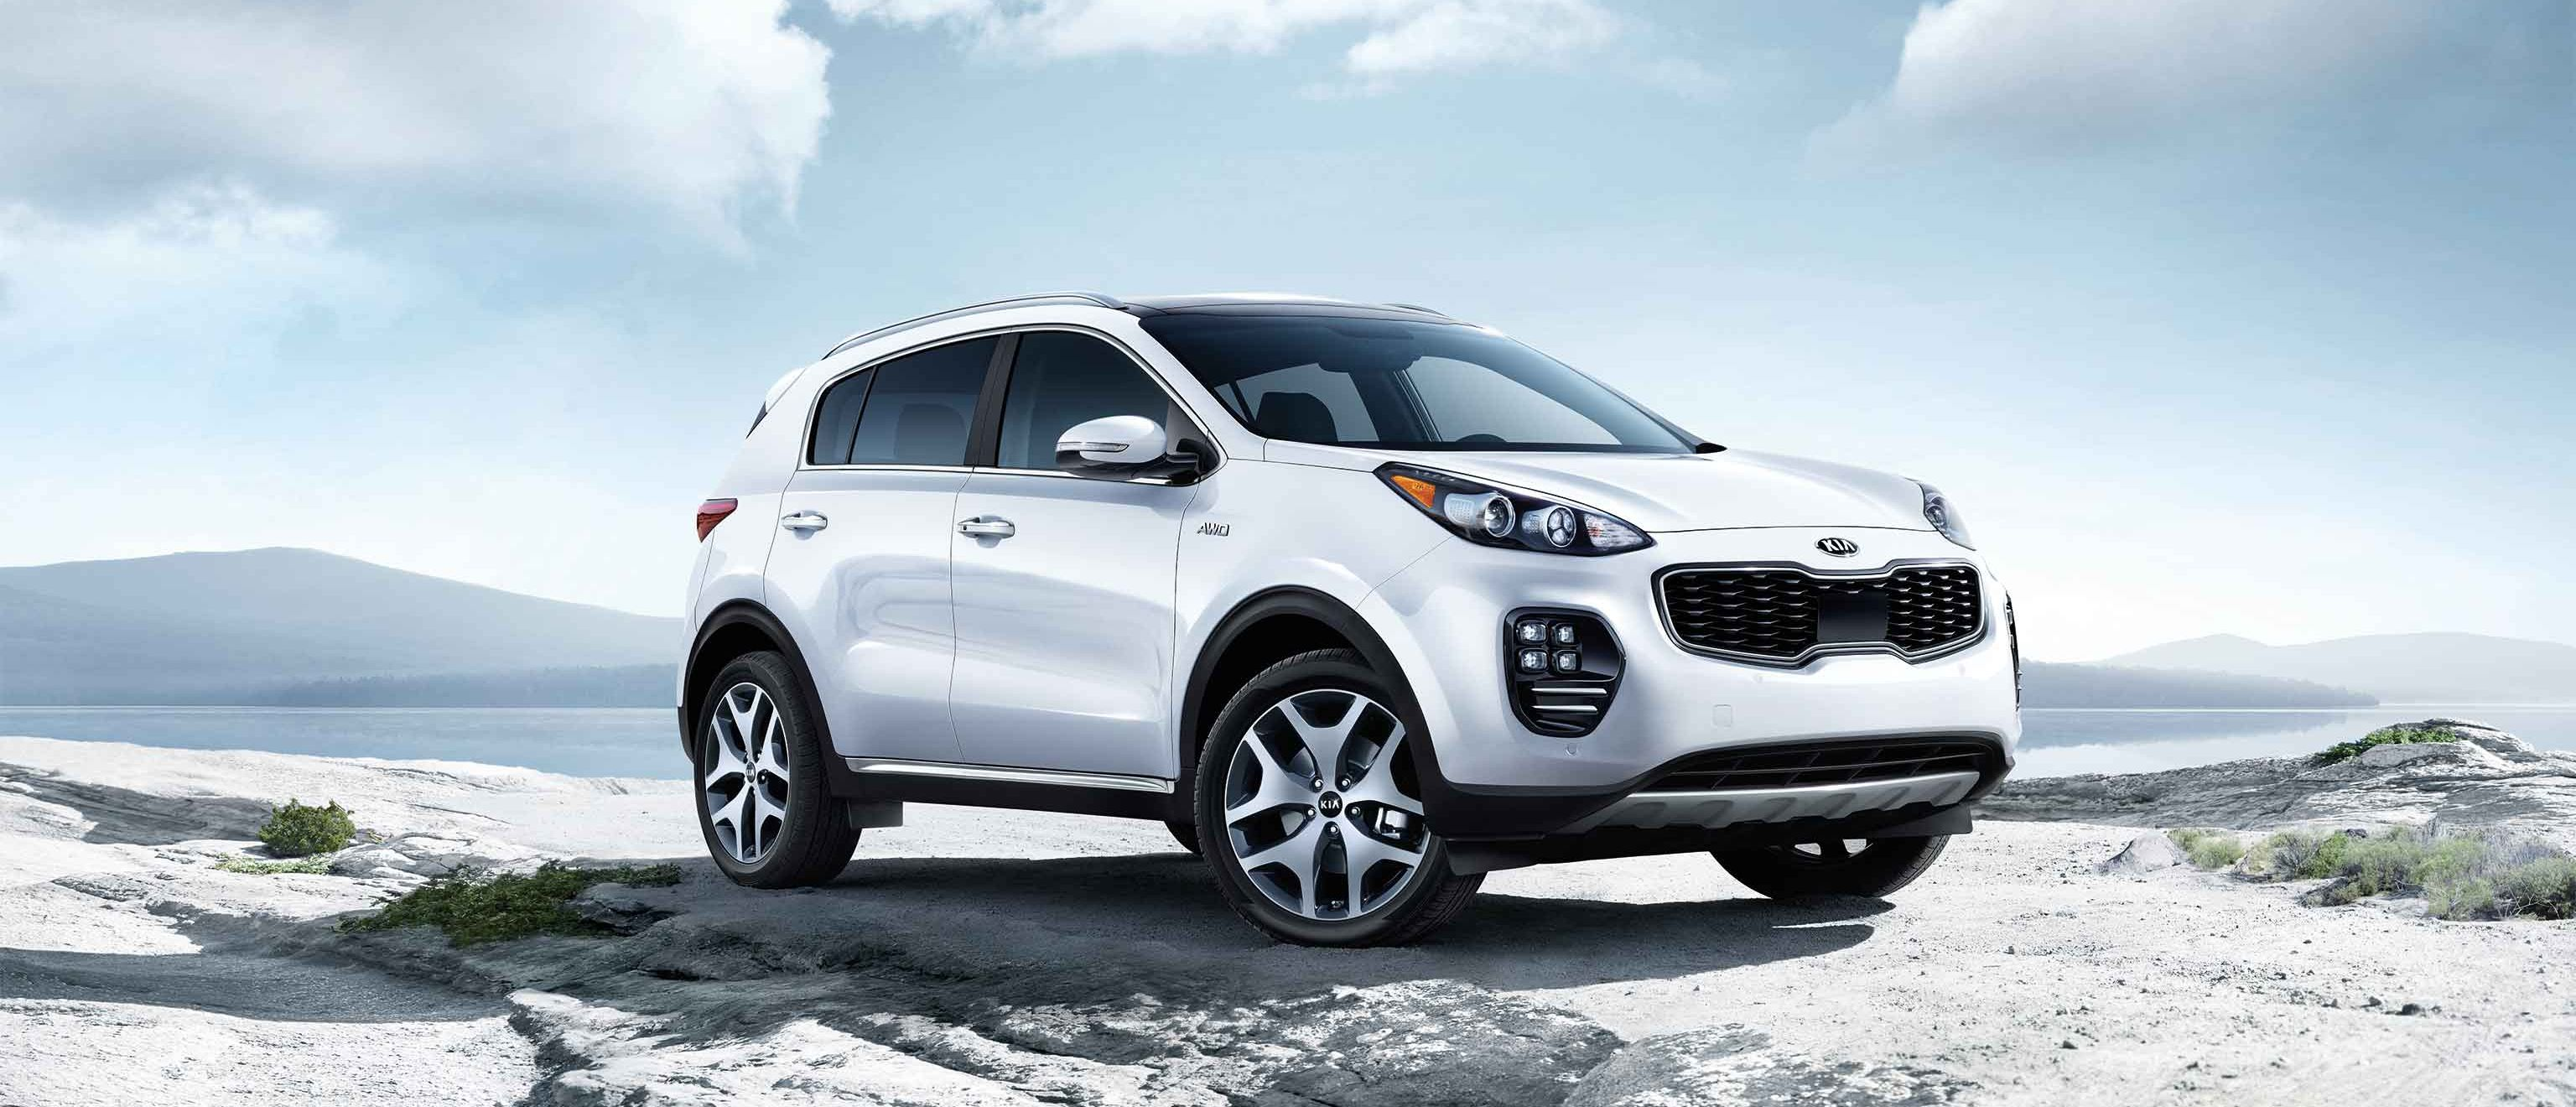 2018 Kia Sportage for Sale near Madison, AL - University Kia